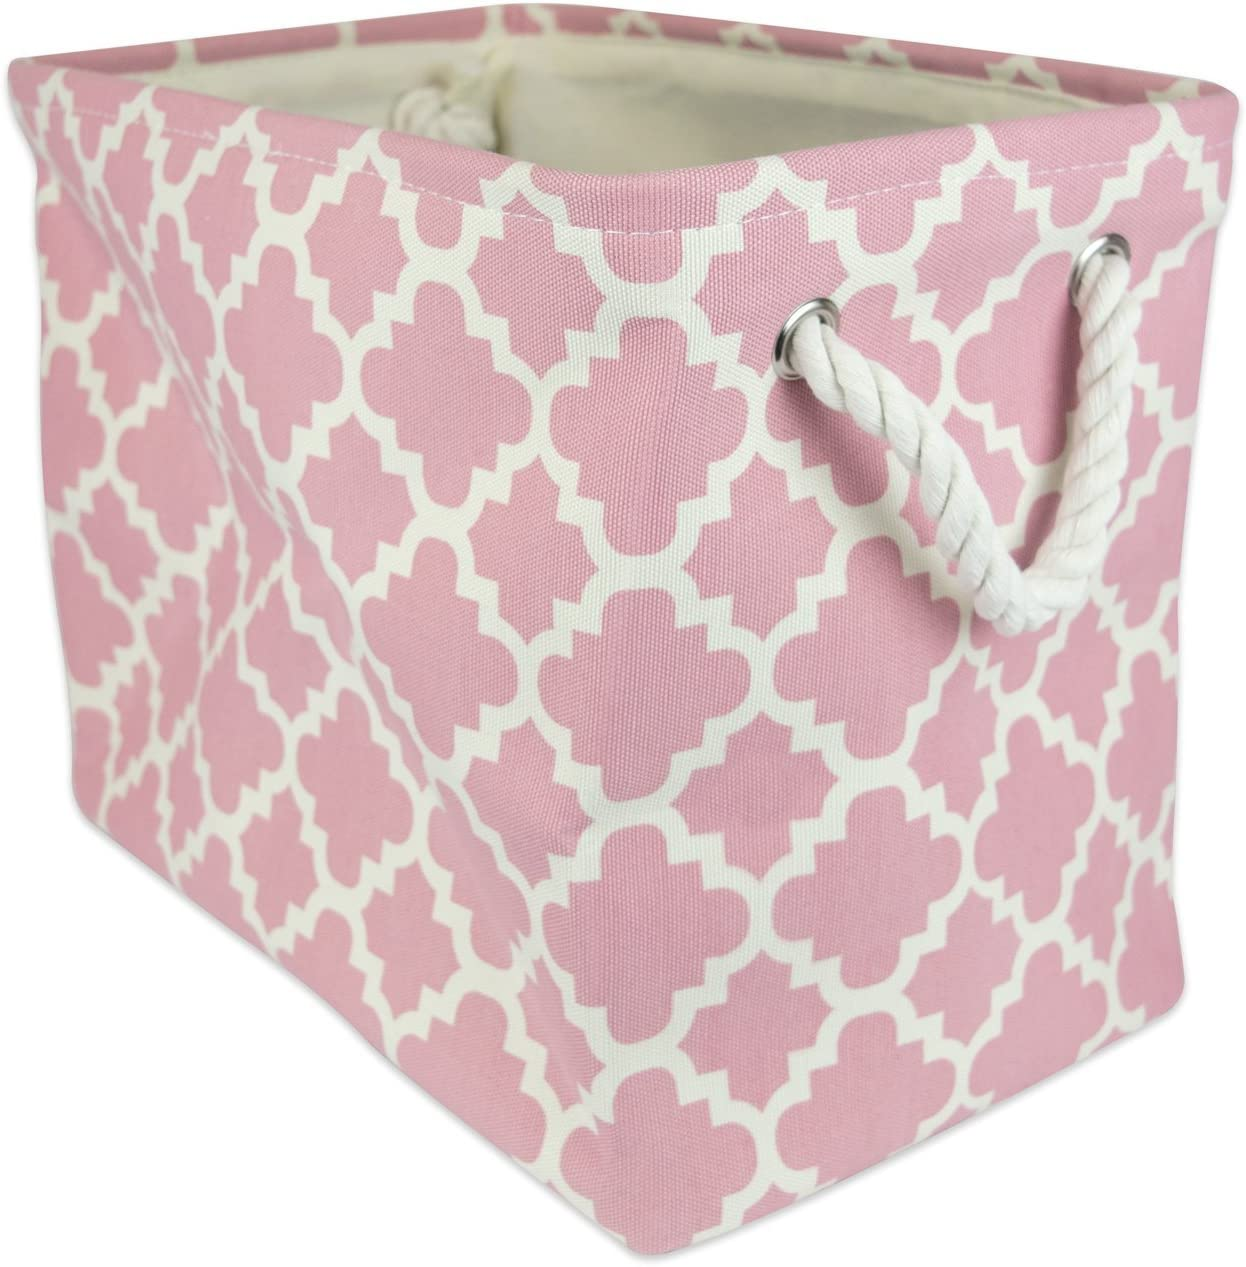 DII Collapsible Polyester Storage Basket or Bin with Durable Cotton Handles, Home Organizer Solution for Office, Bedroom, Closet, Toys, Laundry (Medium – 16x10x12), Lattice Rose